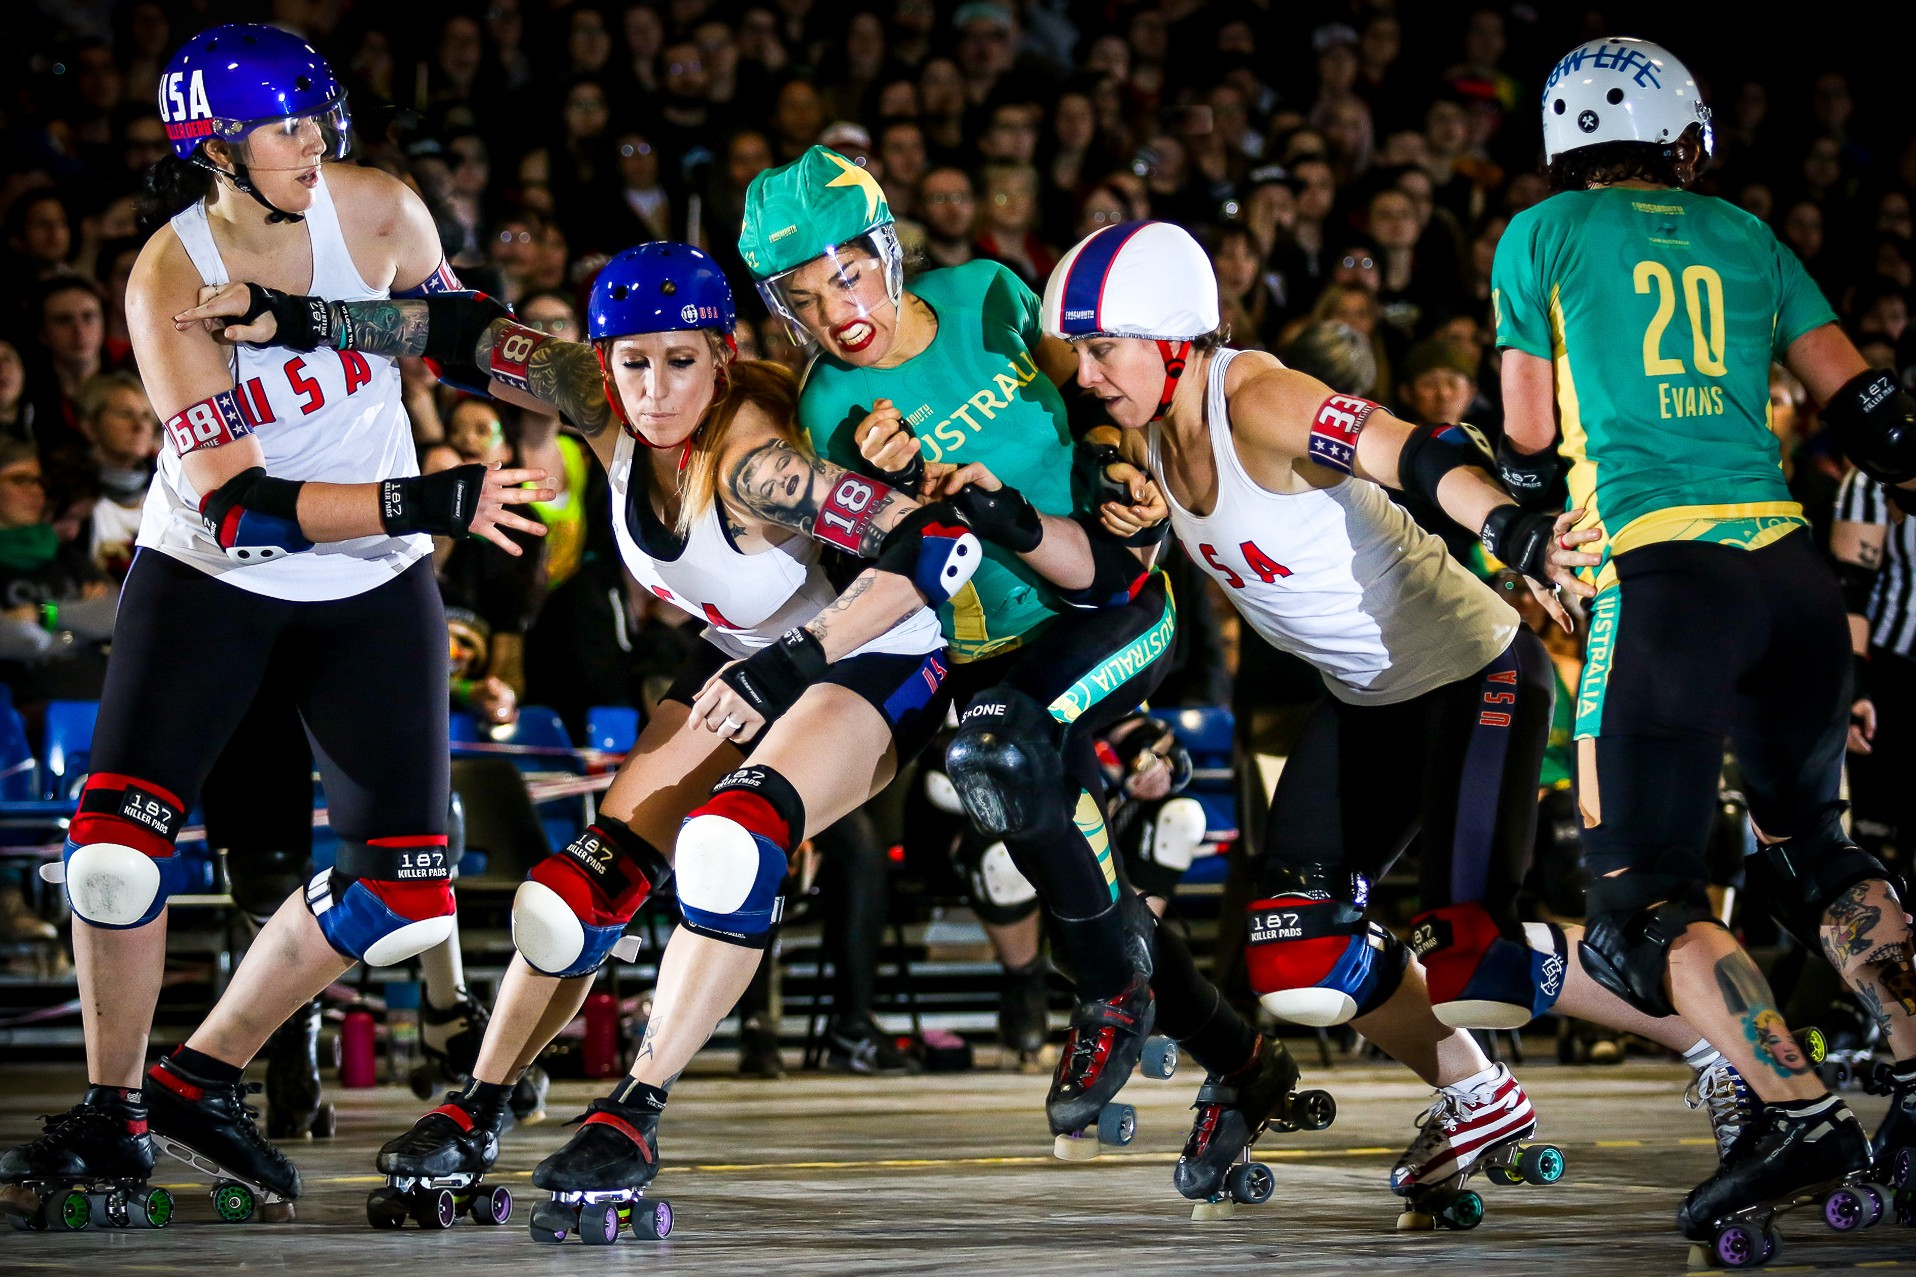 The Best Roller Derby World Cup Photos – Frogmouth – Medium